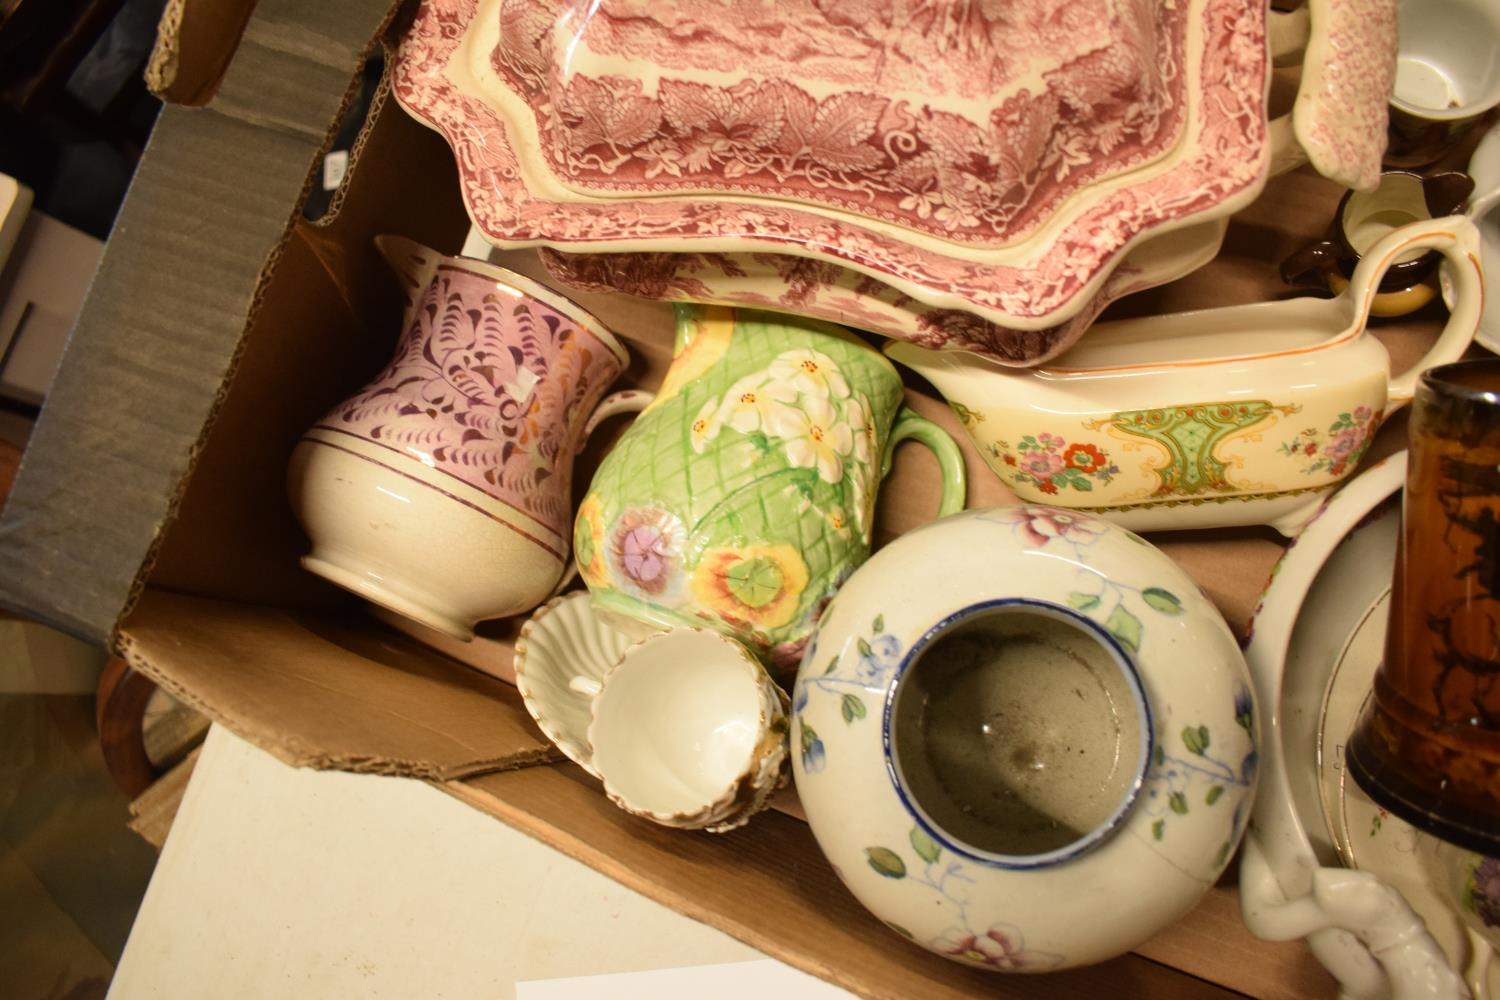 A collection of mainly 19th century pottery to include Masons Tureen af, Royal Winton etc. Condition - Image 2 of 2